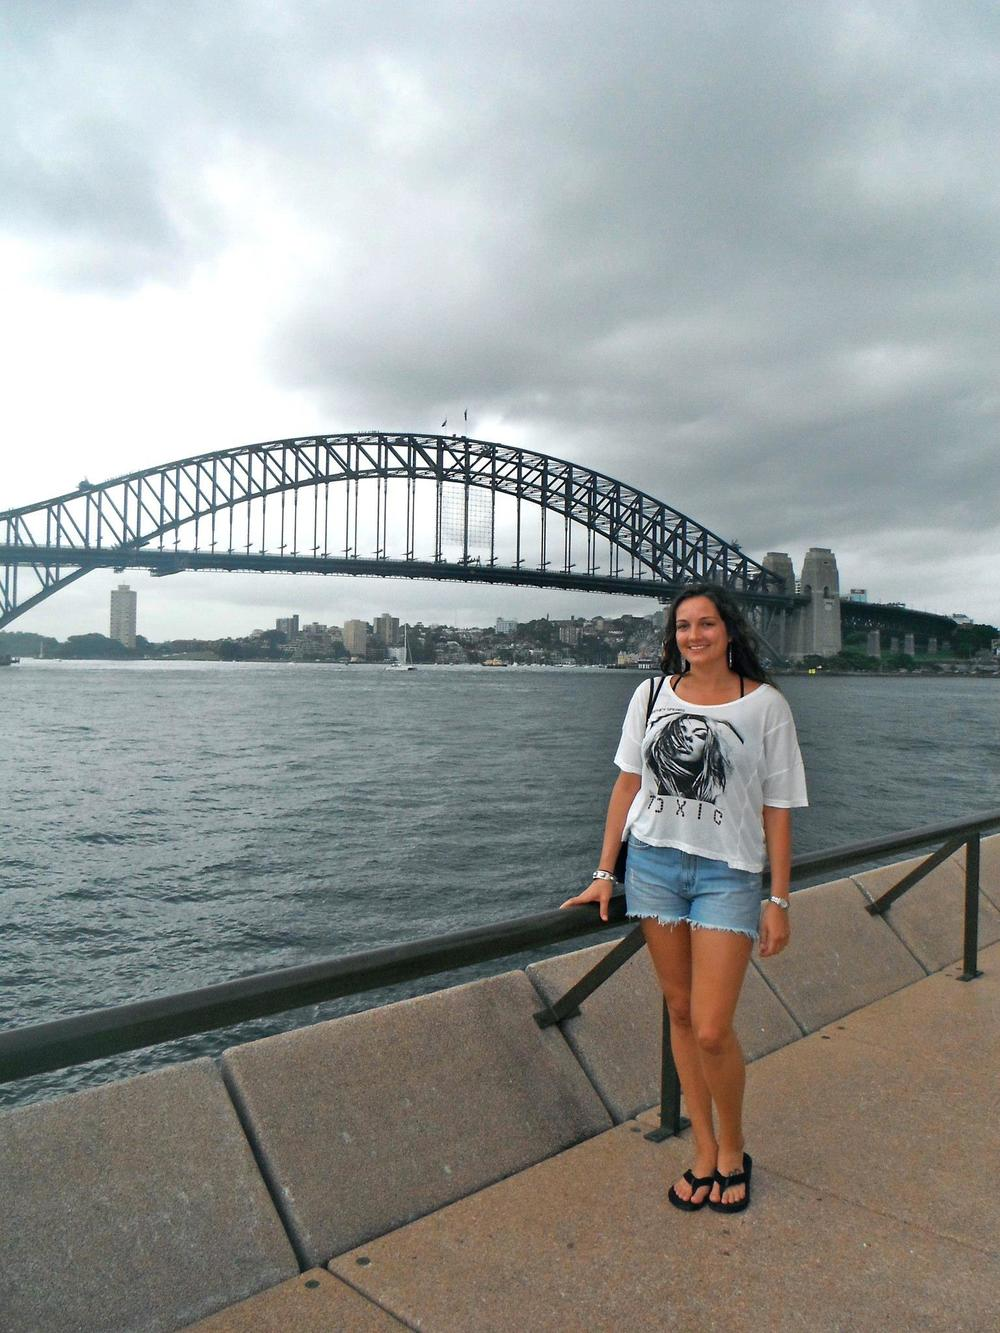 My first day in Australia (..and yes, I am wearing a Britney Spears t-shirt)